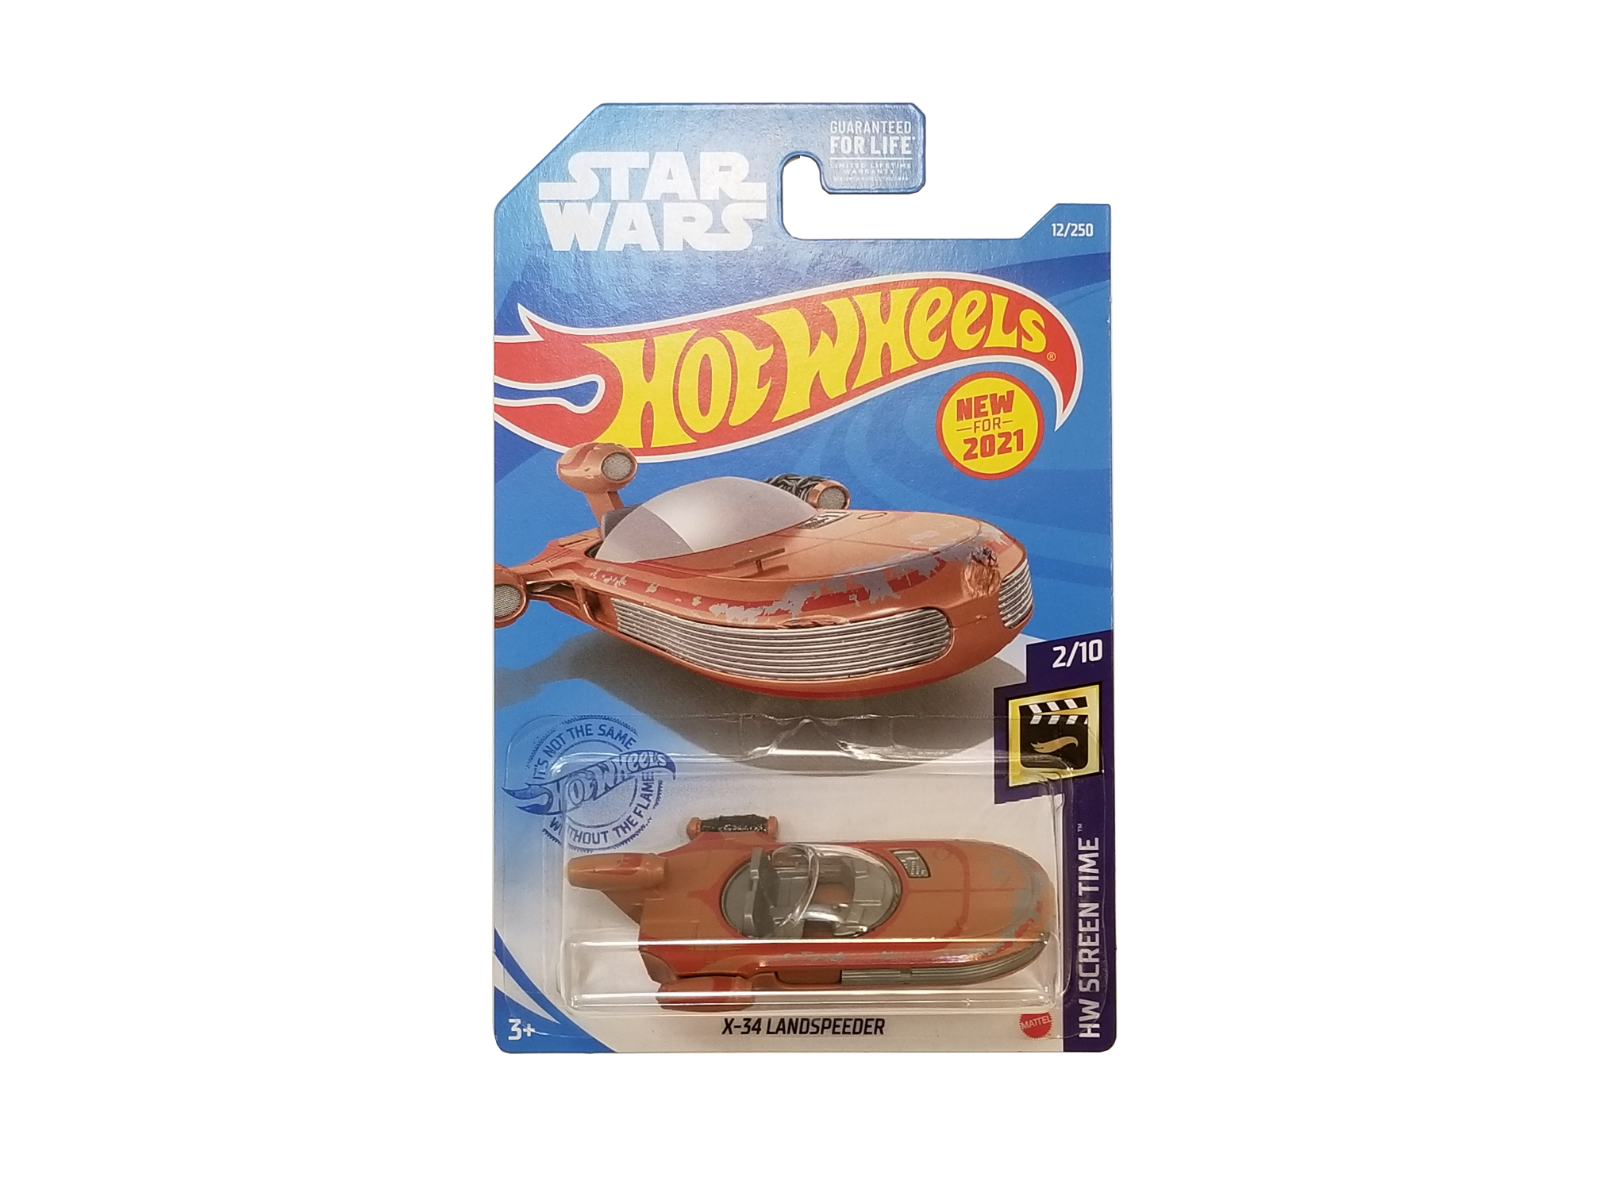 Hot Wheels 2021 Star Wars X-34 Landspeeder  #2/10 12/250 GRX16-M9C1A